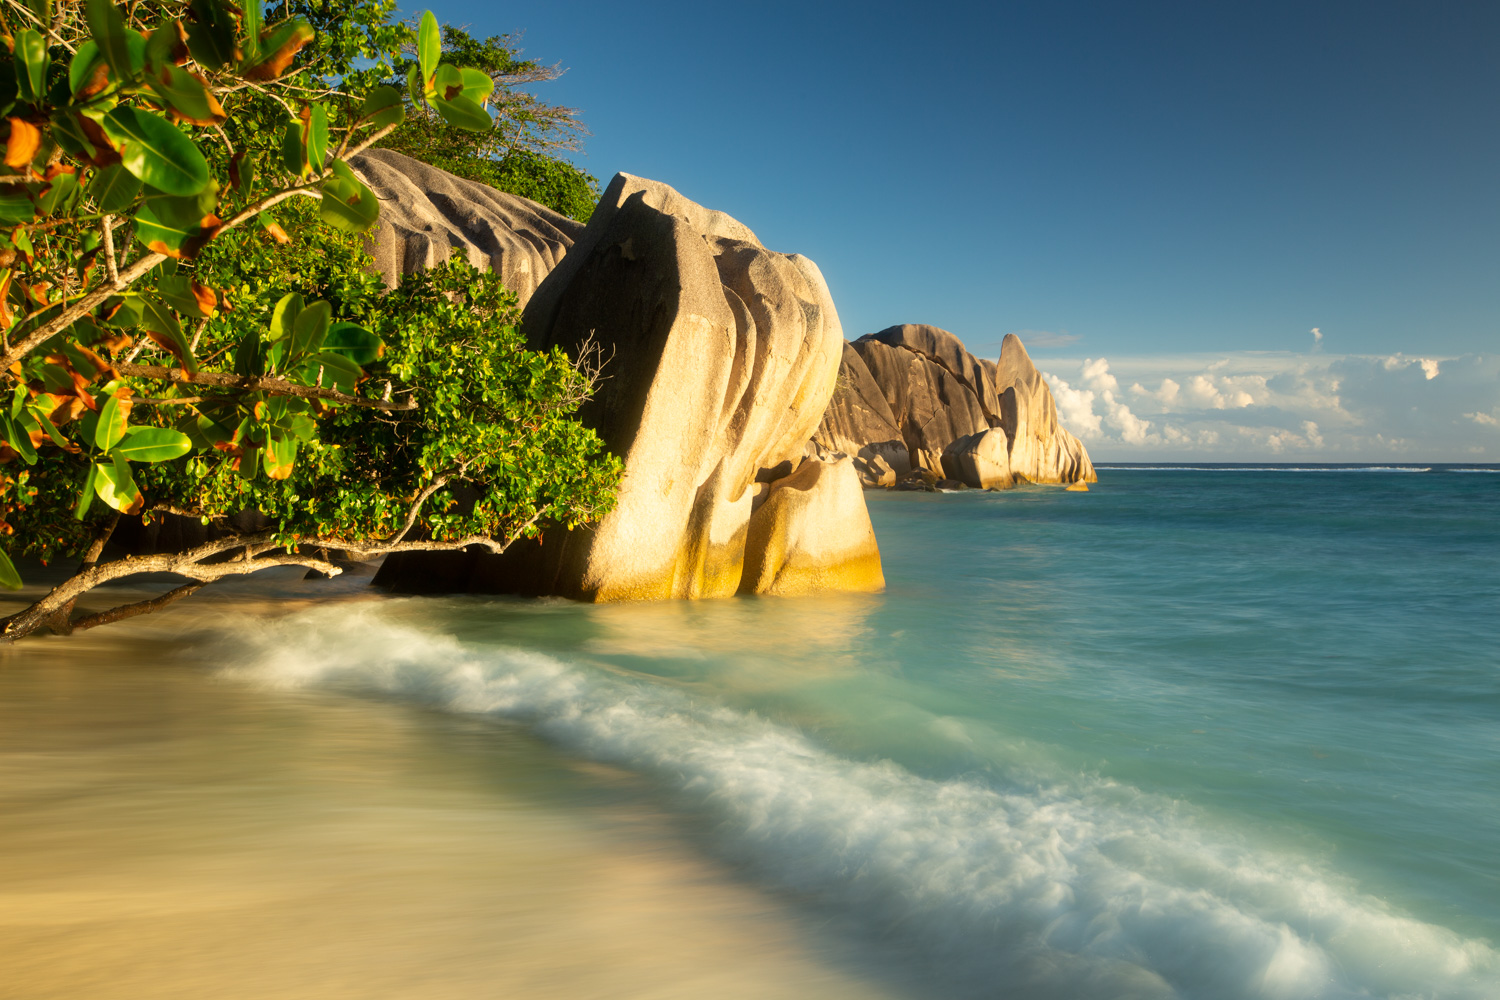 2 - 6 Ways to Capture Coastal Scenes to add Impact to Your Photos